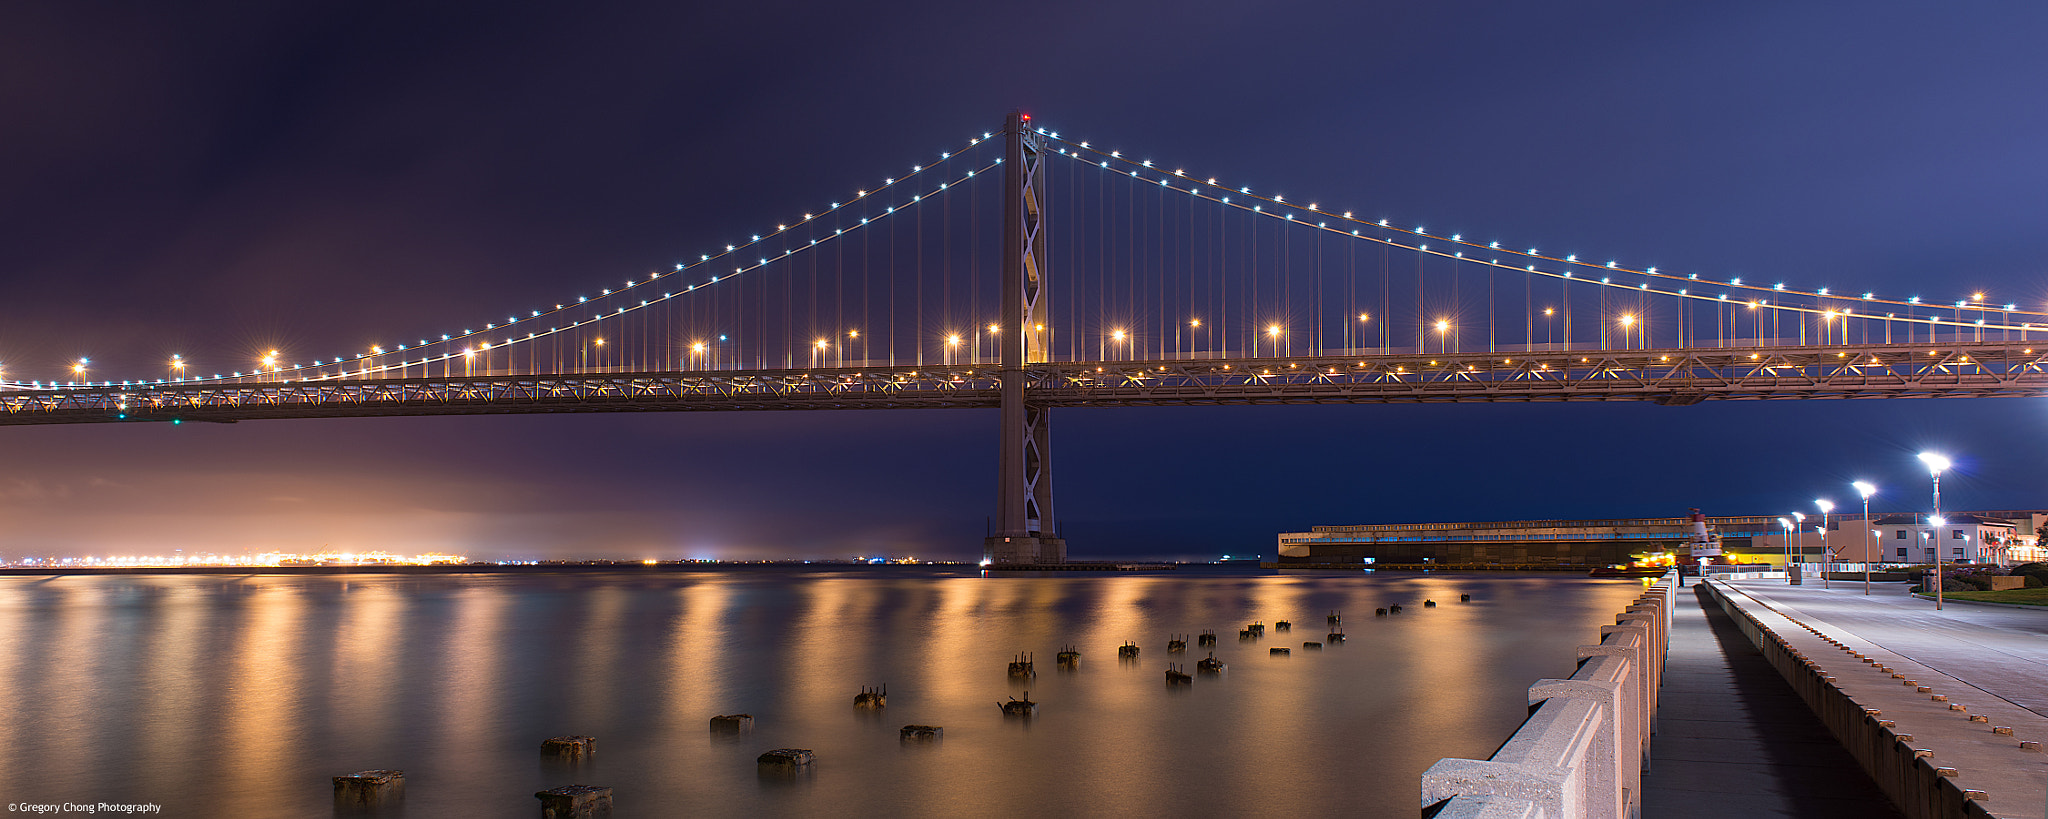 Photograph The San Francisco Bay Bridge at the Embarcadero by Gregory Chong on 500px